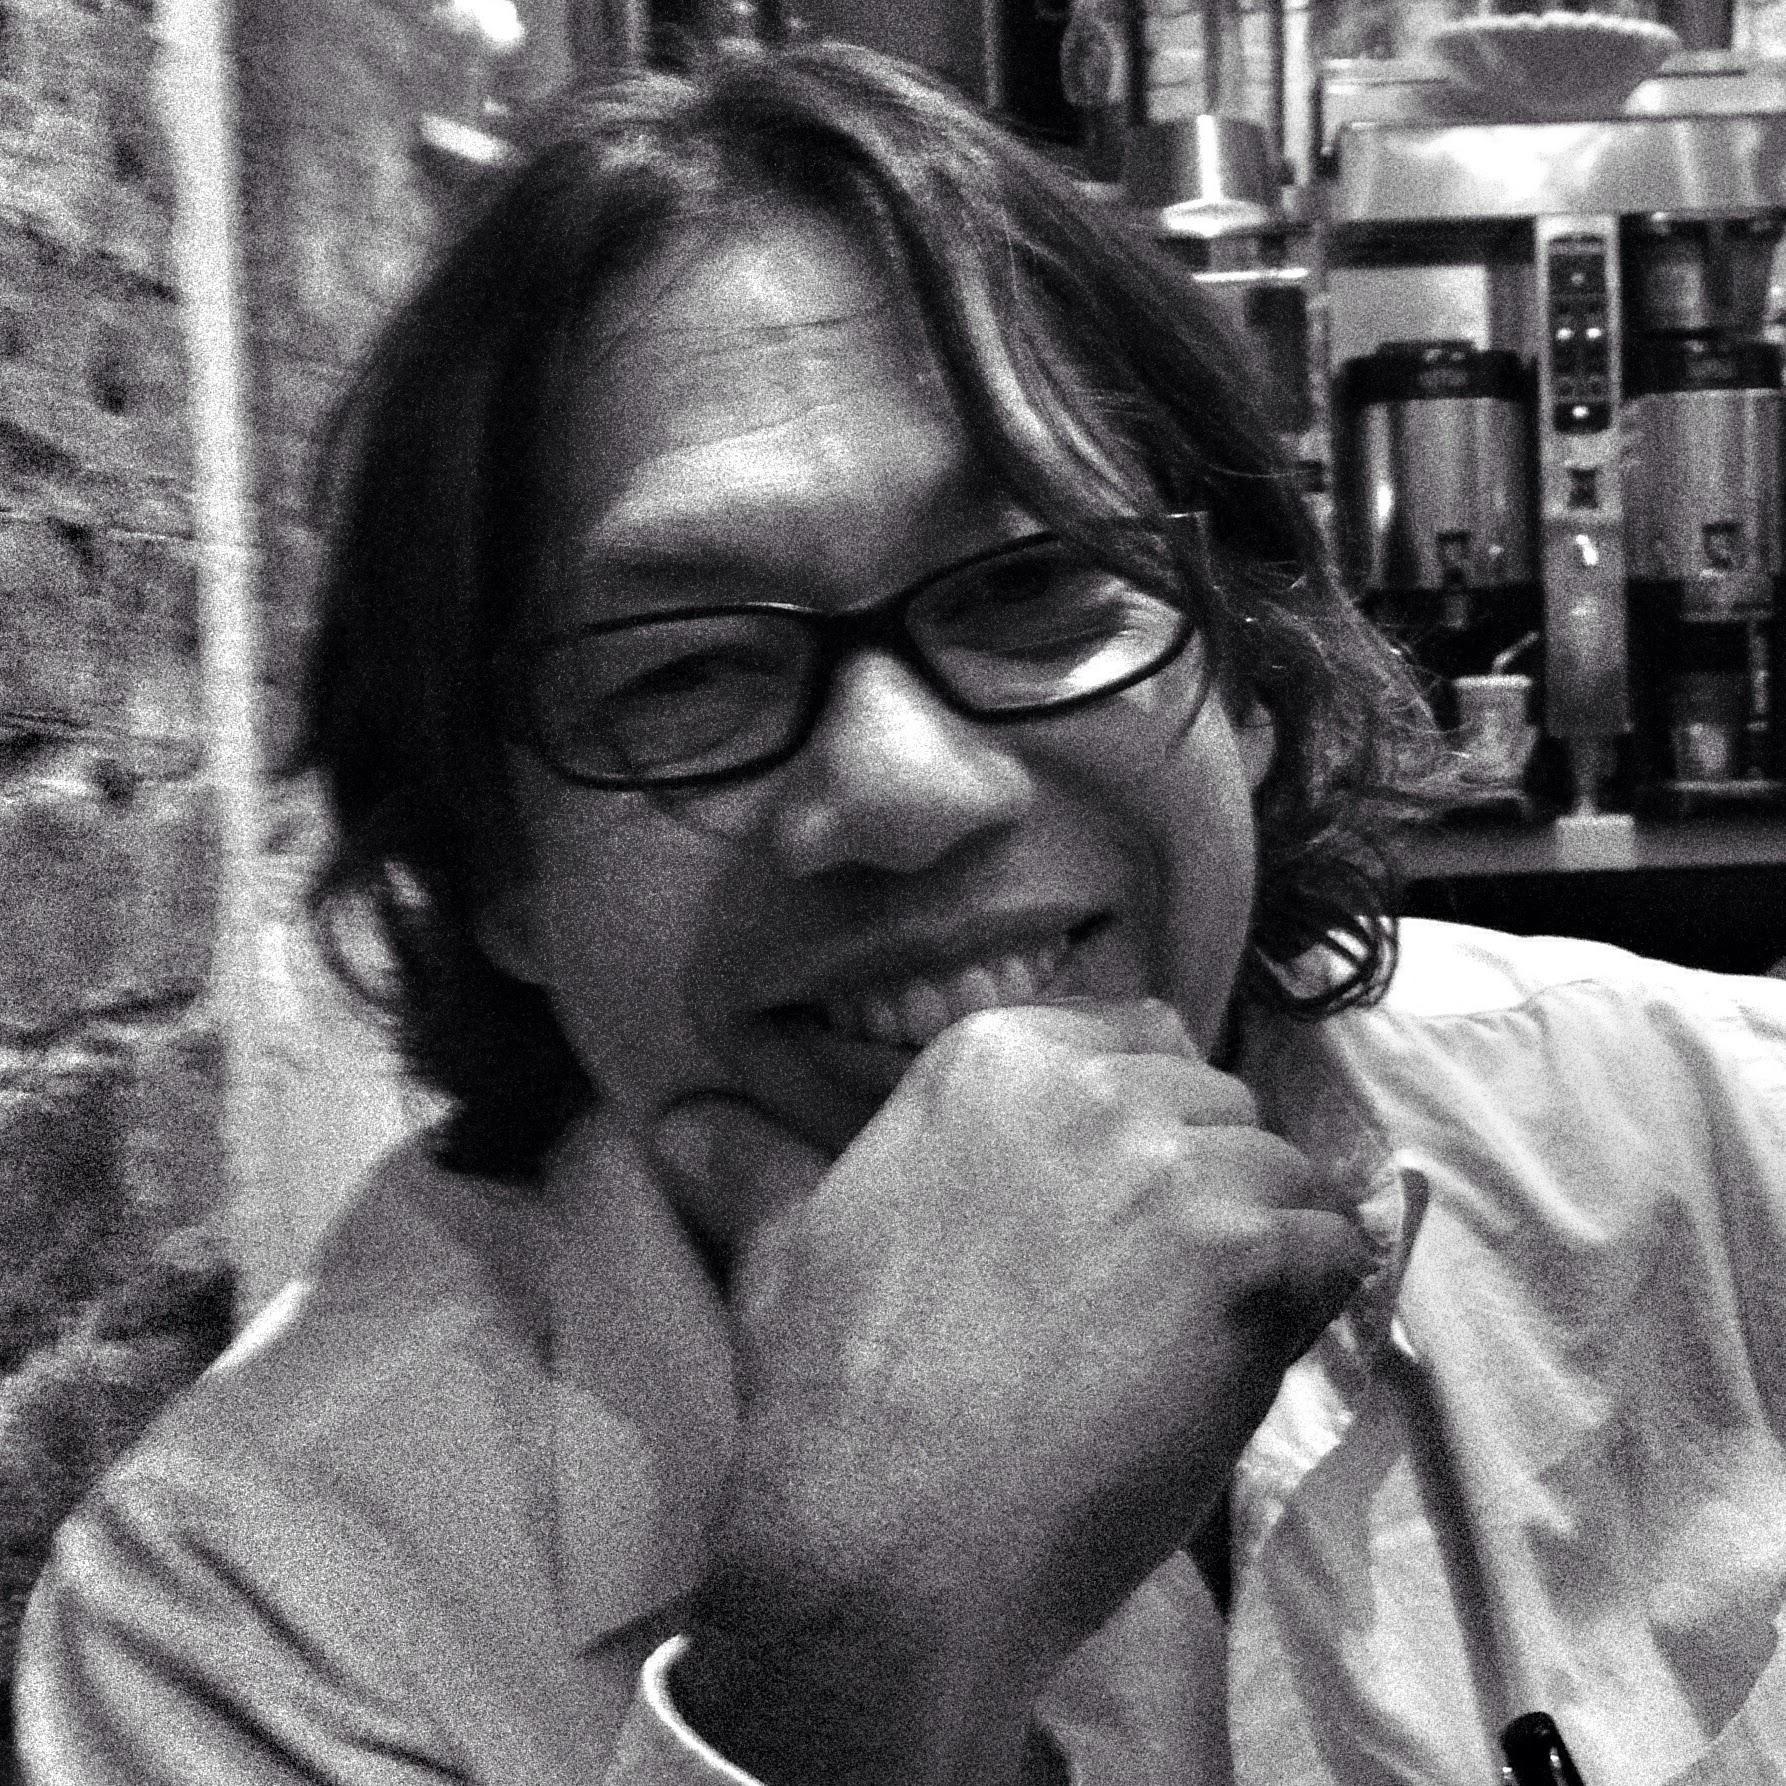 me @ Cafe Lalo in NYC